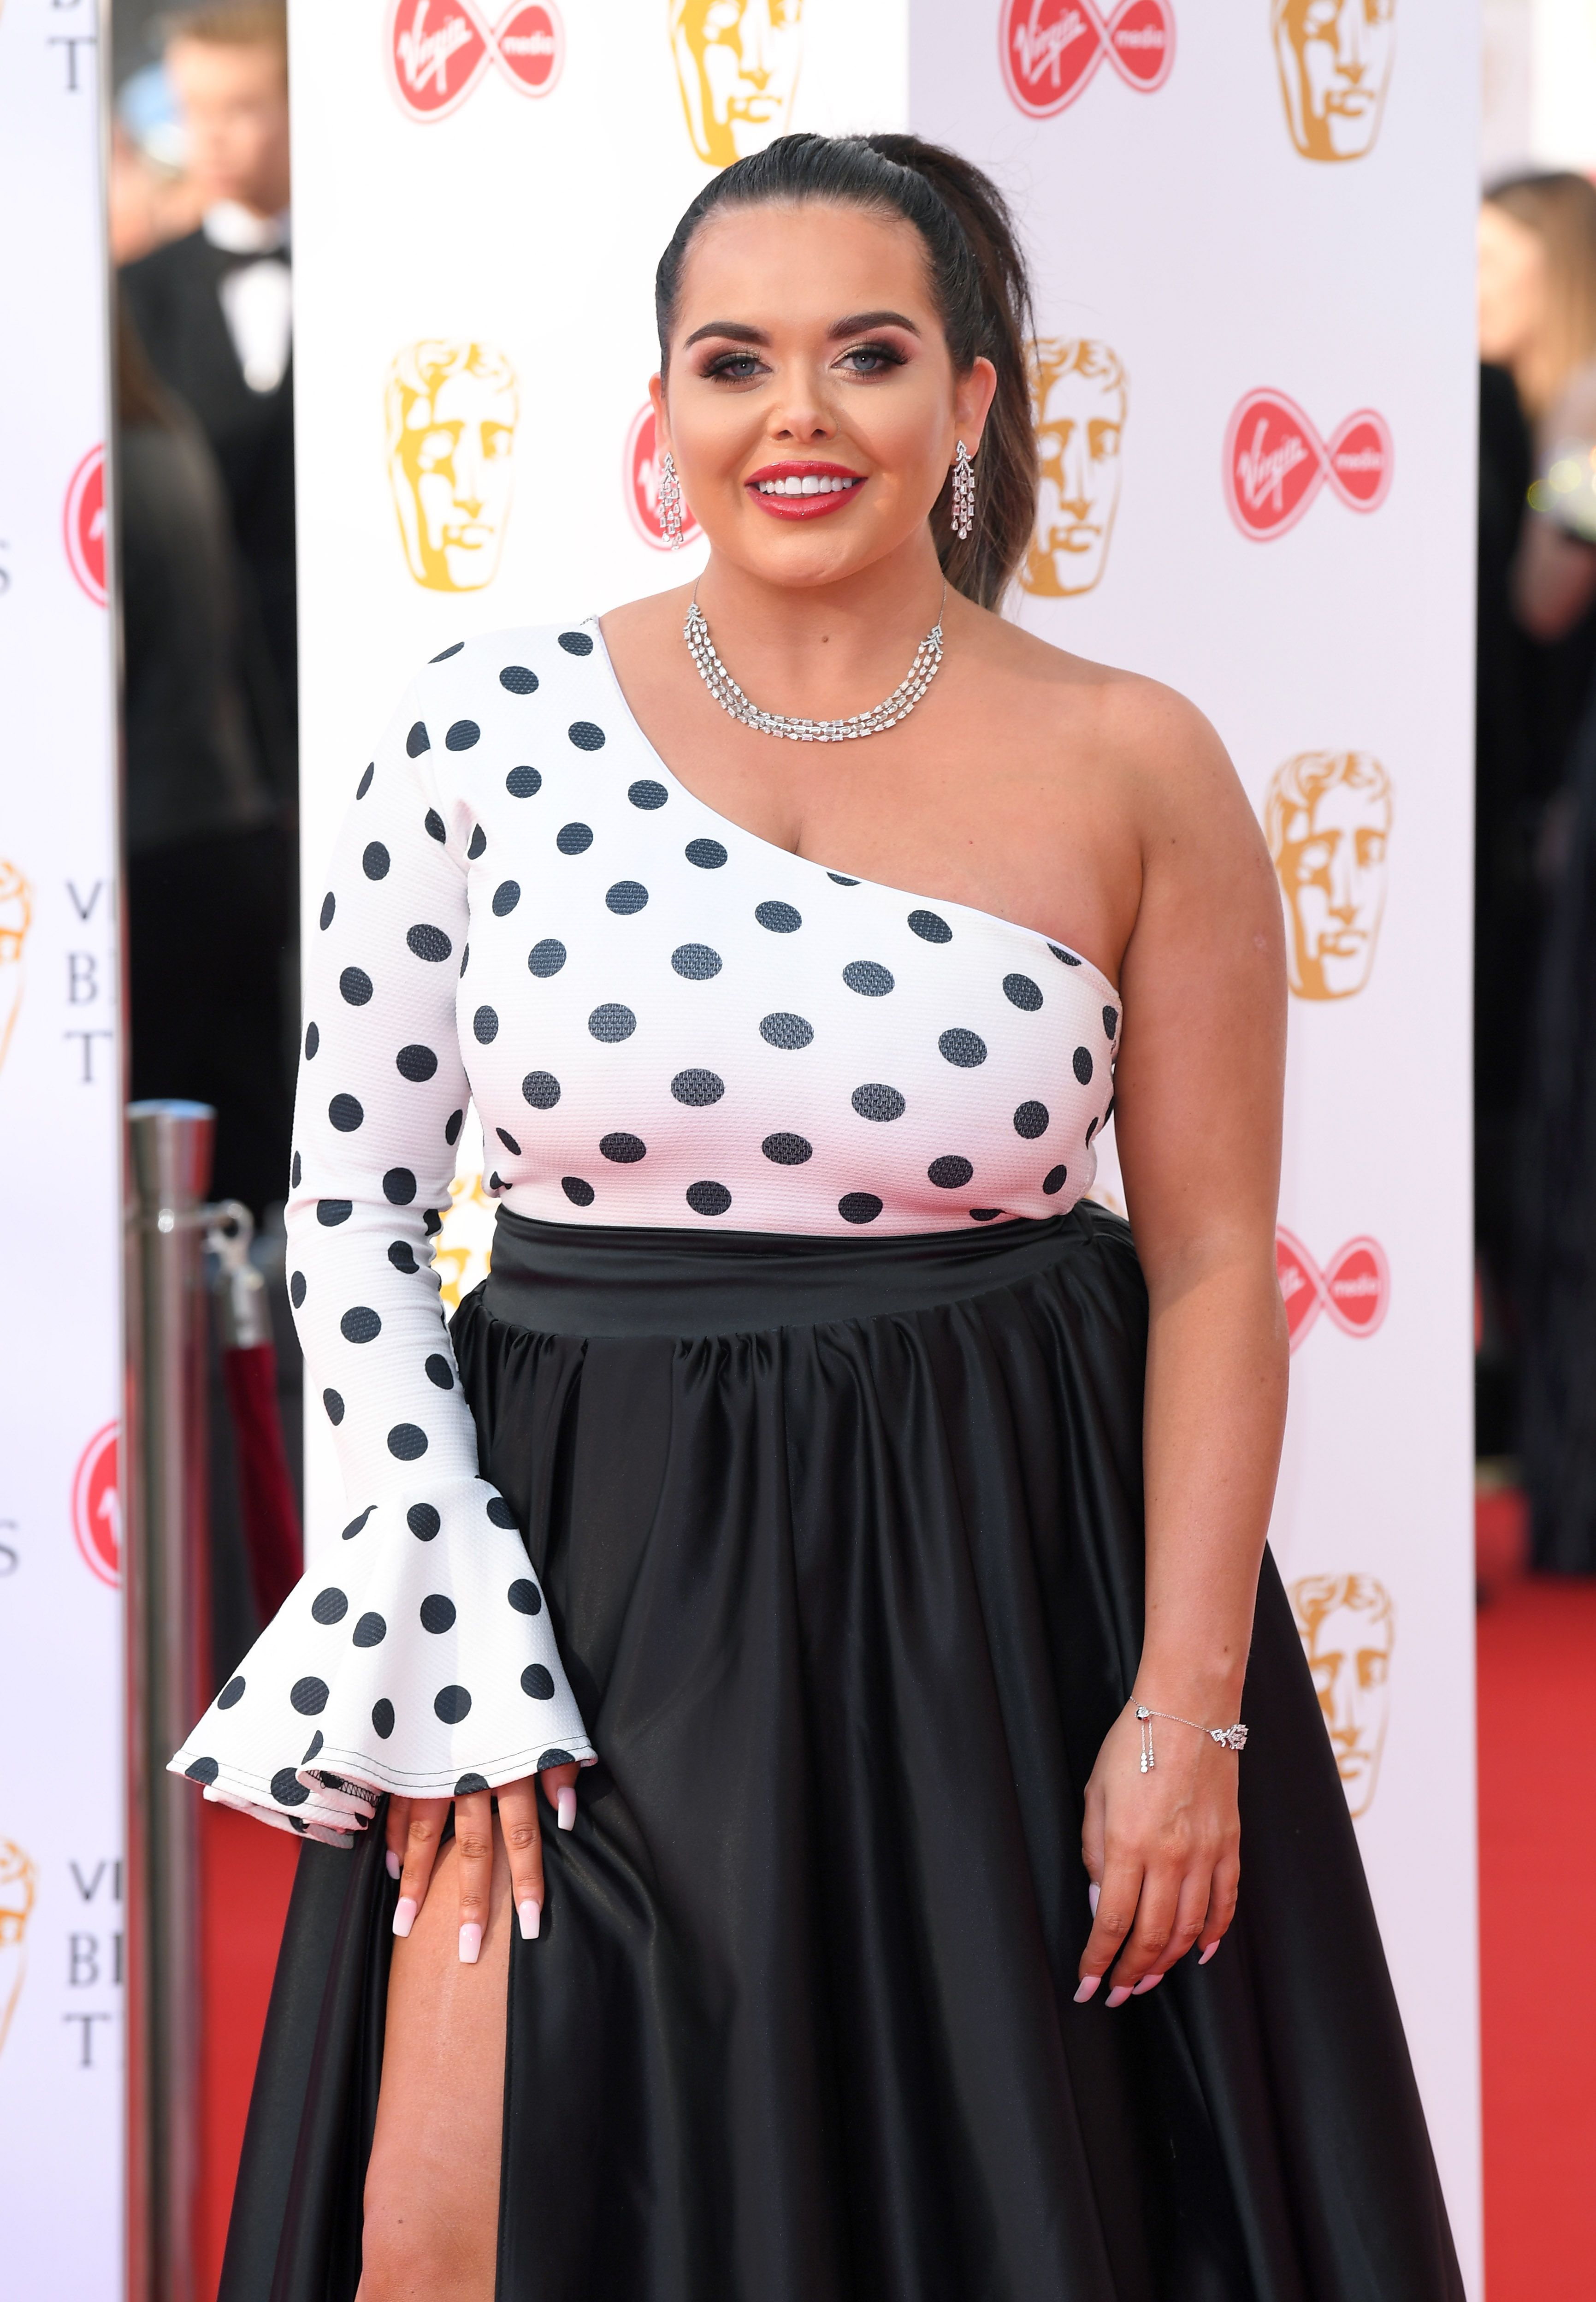 Scarlett Moffatt opens up about cancer scare as she gets abnormal smear test results